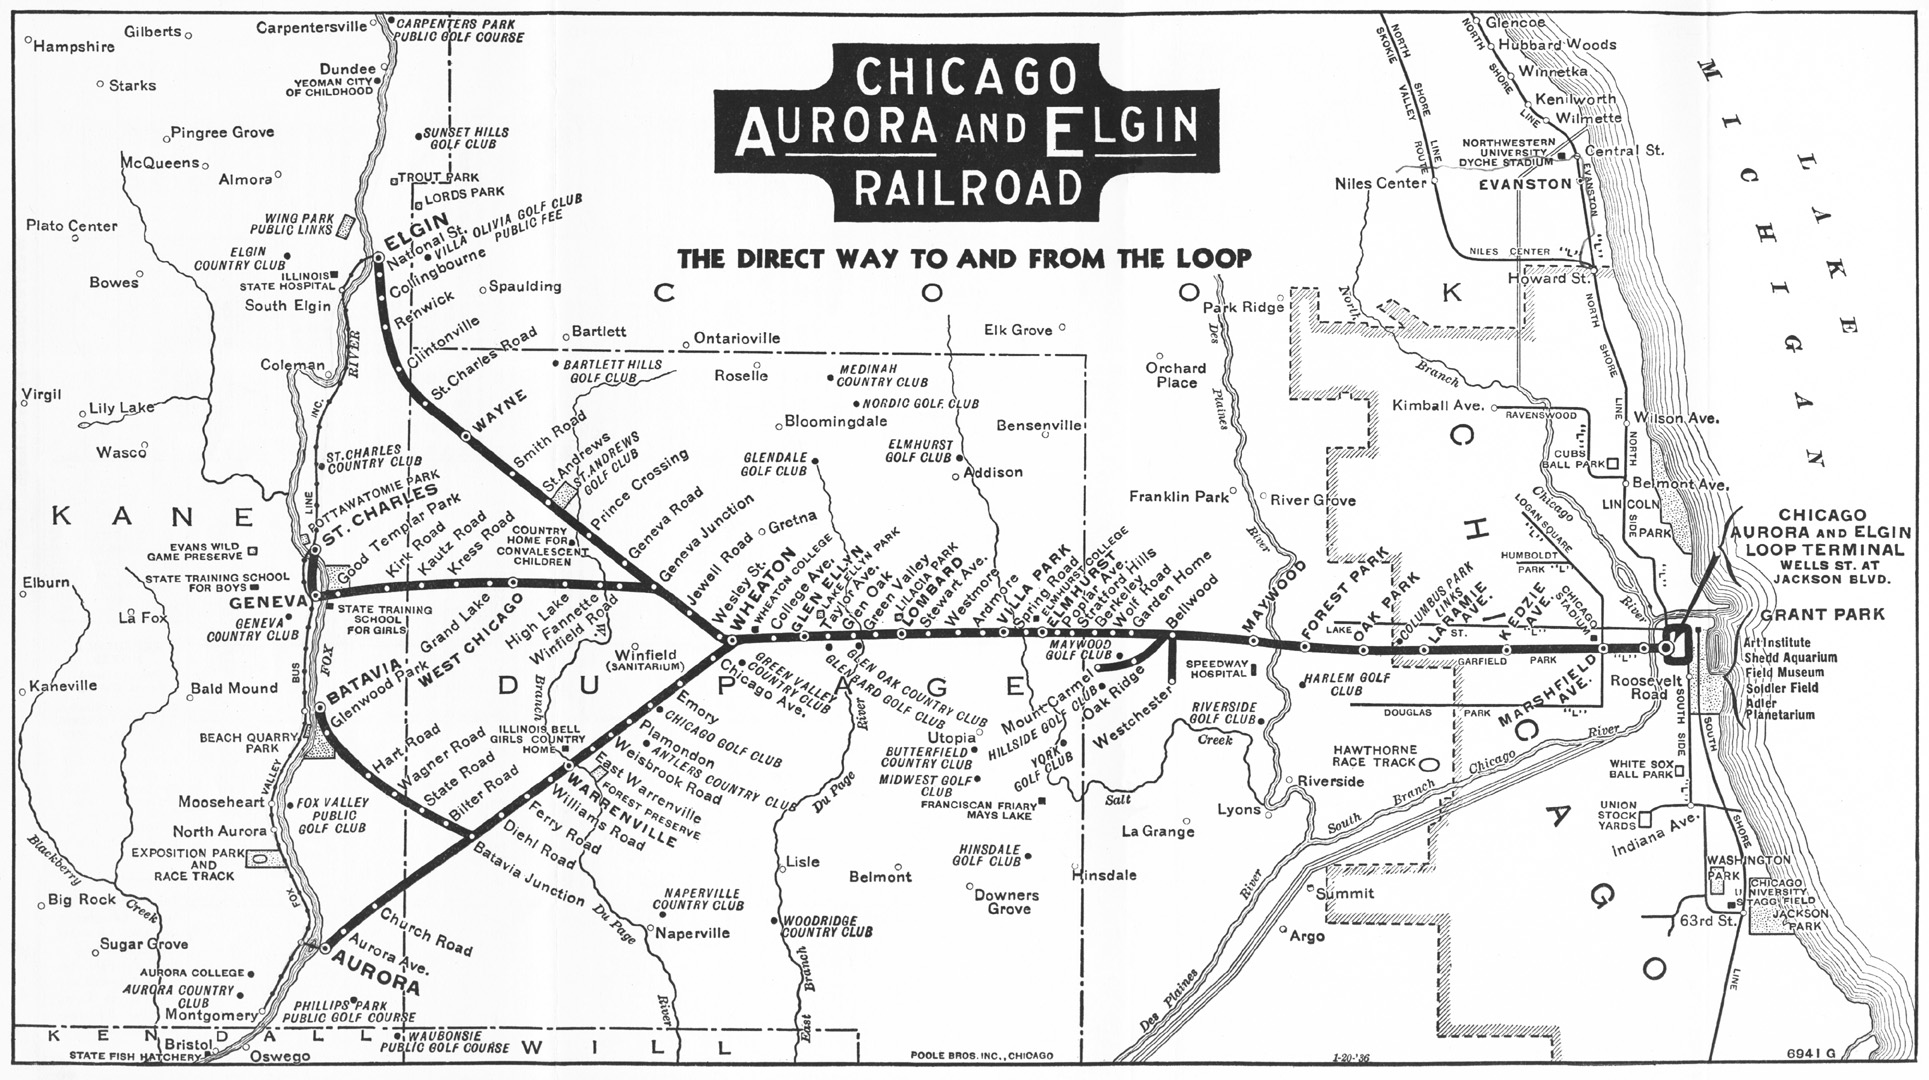 Chicago Aurora and Elgin Railroad - Wikipedia on strasburg railroad route map, southern railway route map, air china route map, iberia route map, grand trunk route map, wheeling & lake erie route map, mt. shasta route map, chicago great western route map, united route map, union pacific route map, milwaukee railroad lines, dallas area rapid transit route map, illinois central route map, virginia & truckee route map, georgia railroad route map, via rail canada route map, rock island route map, air canada route map, milwaukee railroad in idaho, soo line railroad map,